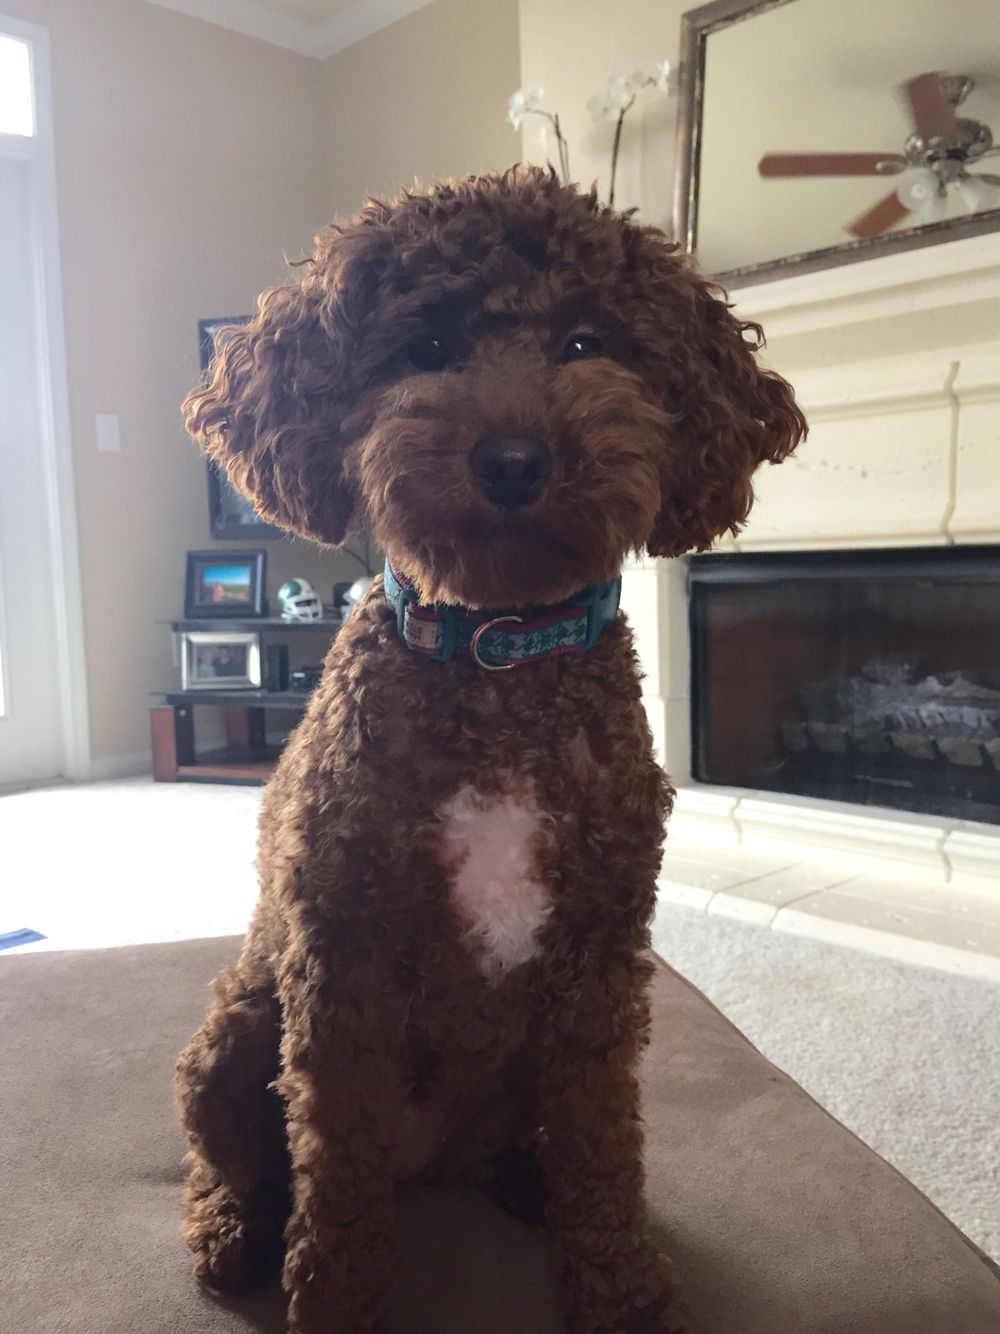 Red Miniature Poodle Portuguese Water Dog Puppy Miniature